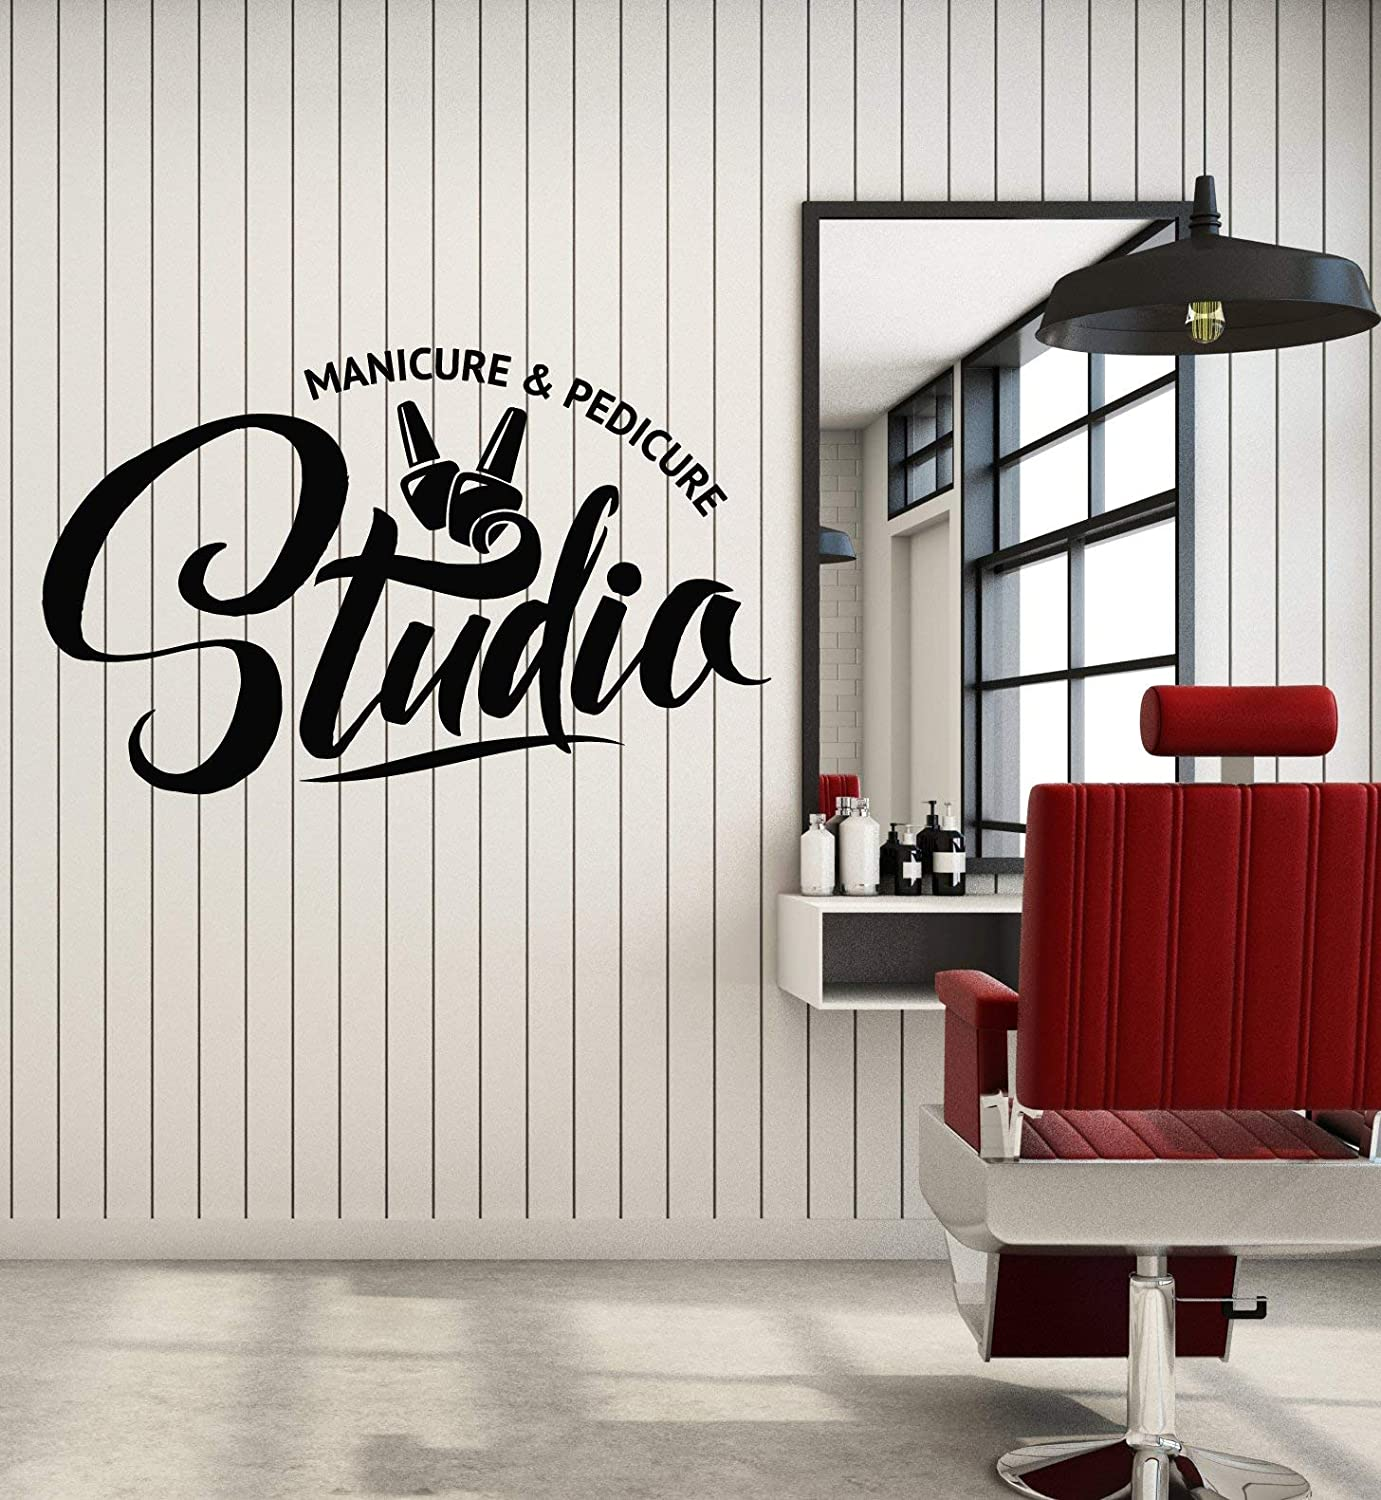 Vinyl Wall Decal Manicure Pedicure Nail Beauty Studio Words Stickers Mural Large Decor (g1246) Black 11 in X 17.5 in